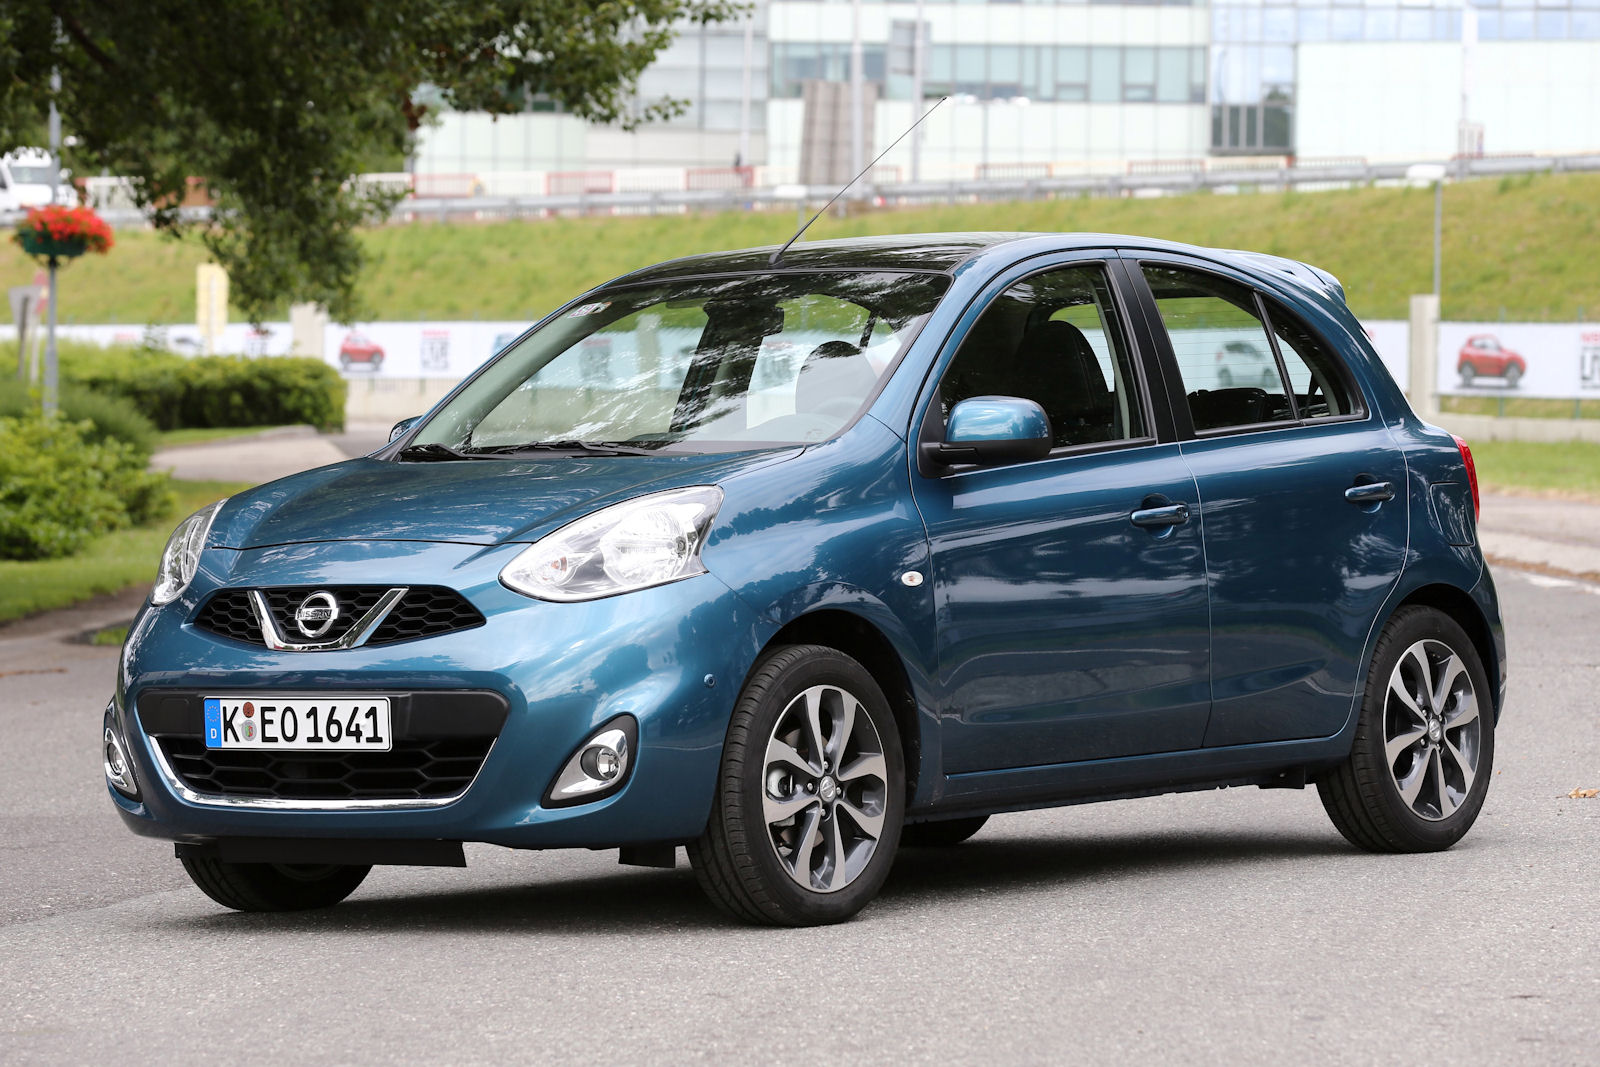 2015 Nissan Micra K13 Pictures Information And Specs Auto Database Com